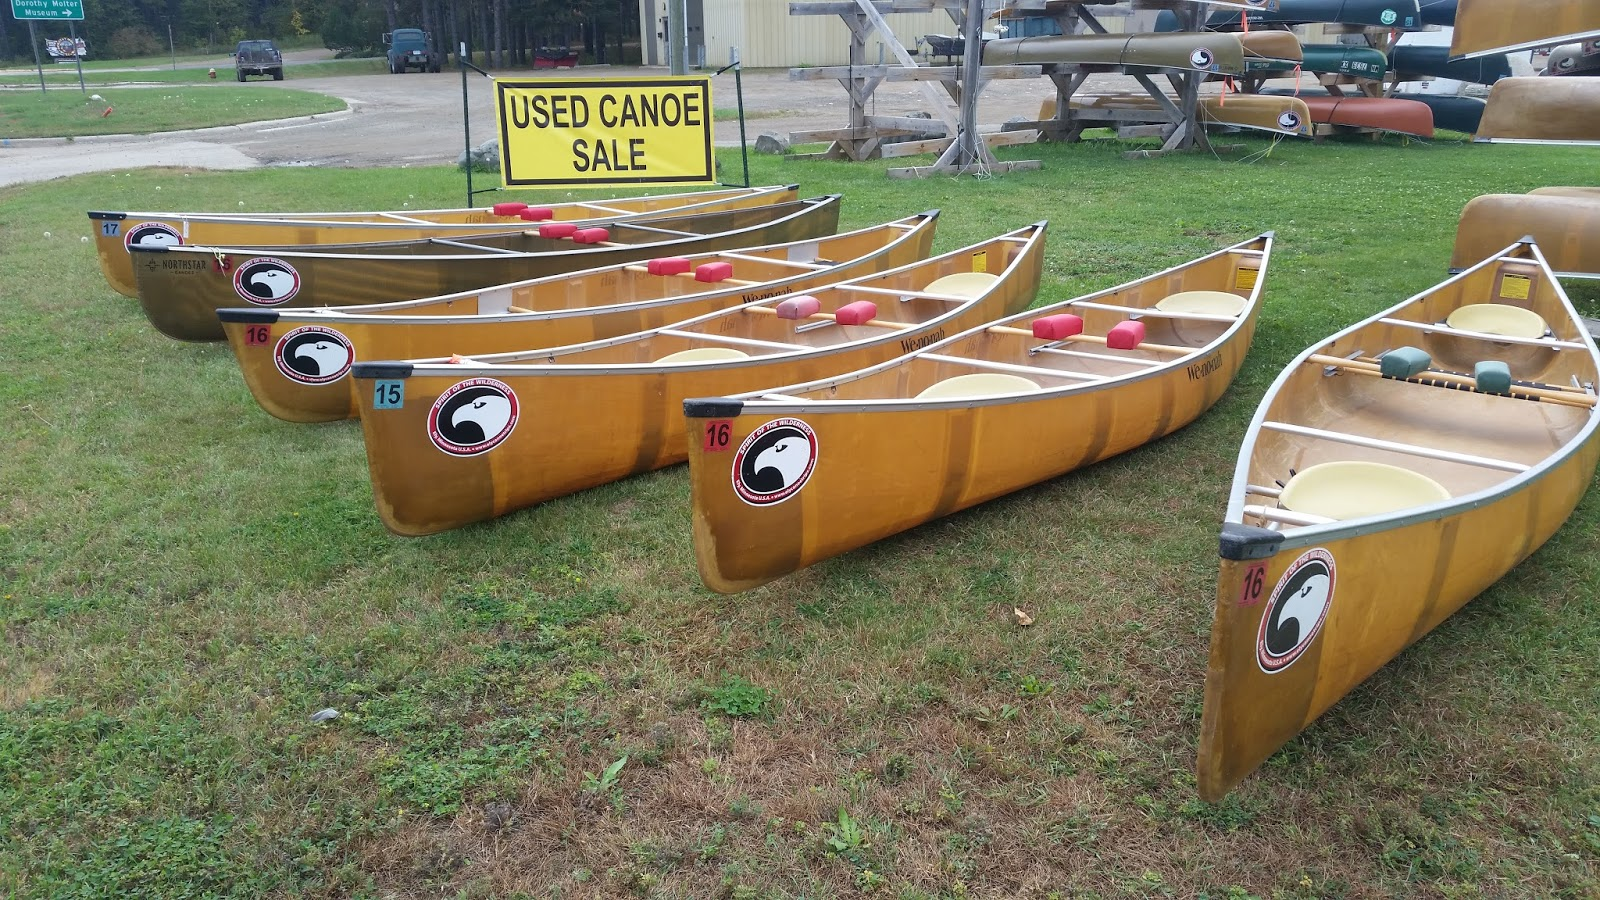 Spirit of the Wilderness News: Used Canoes, Kayaks & SUP Board Sale